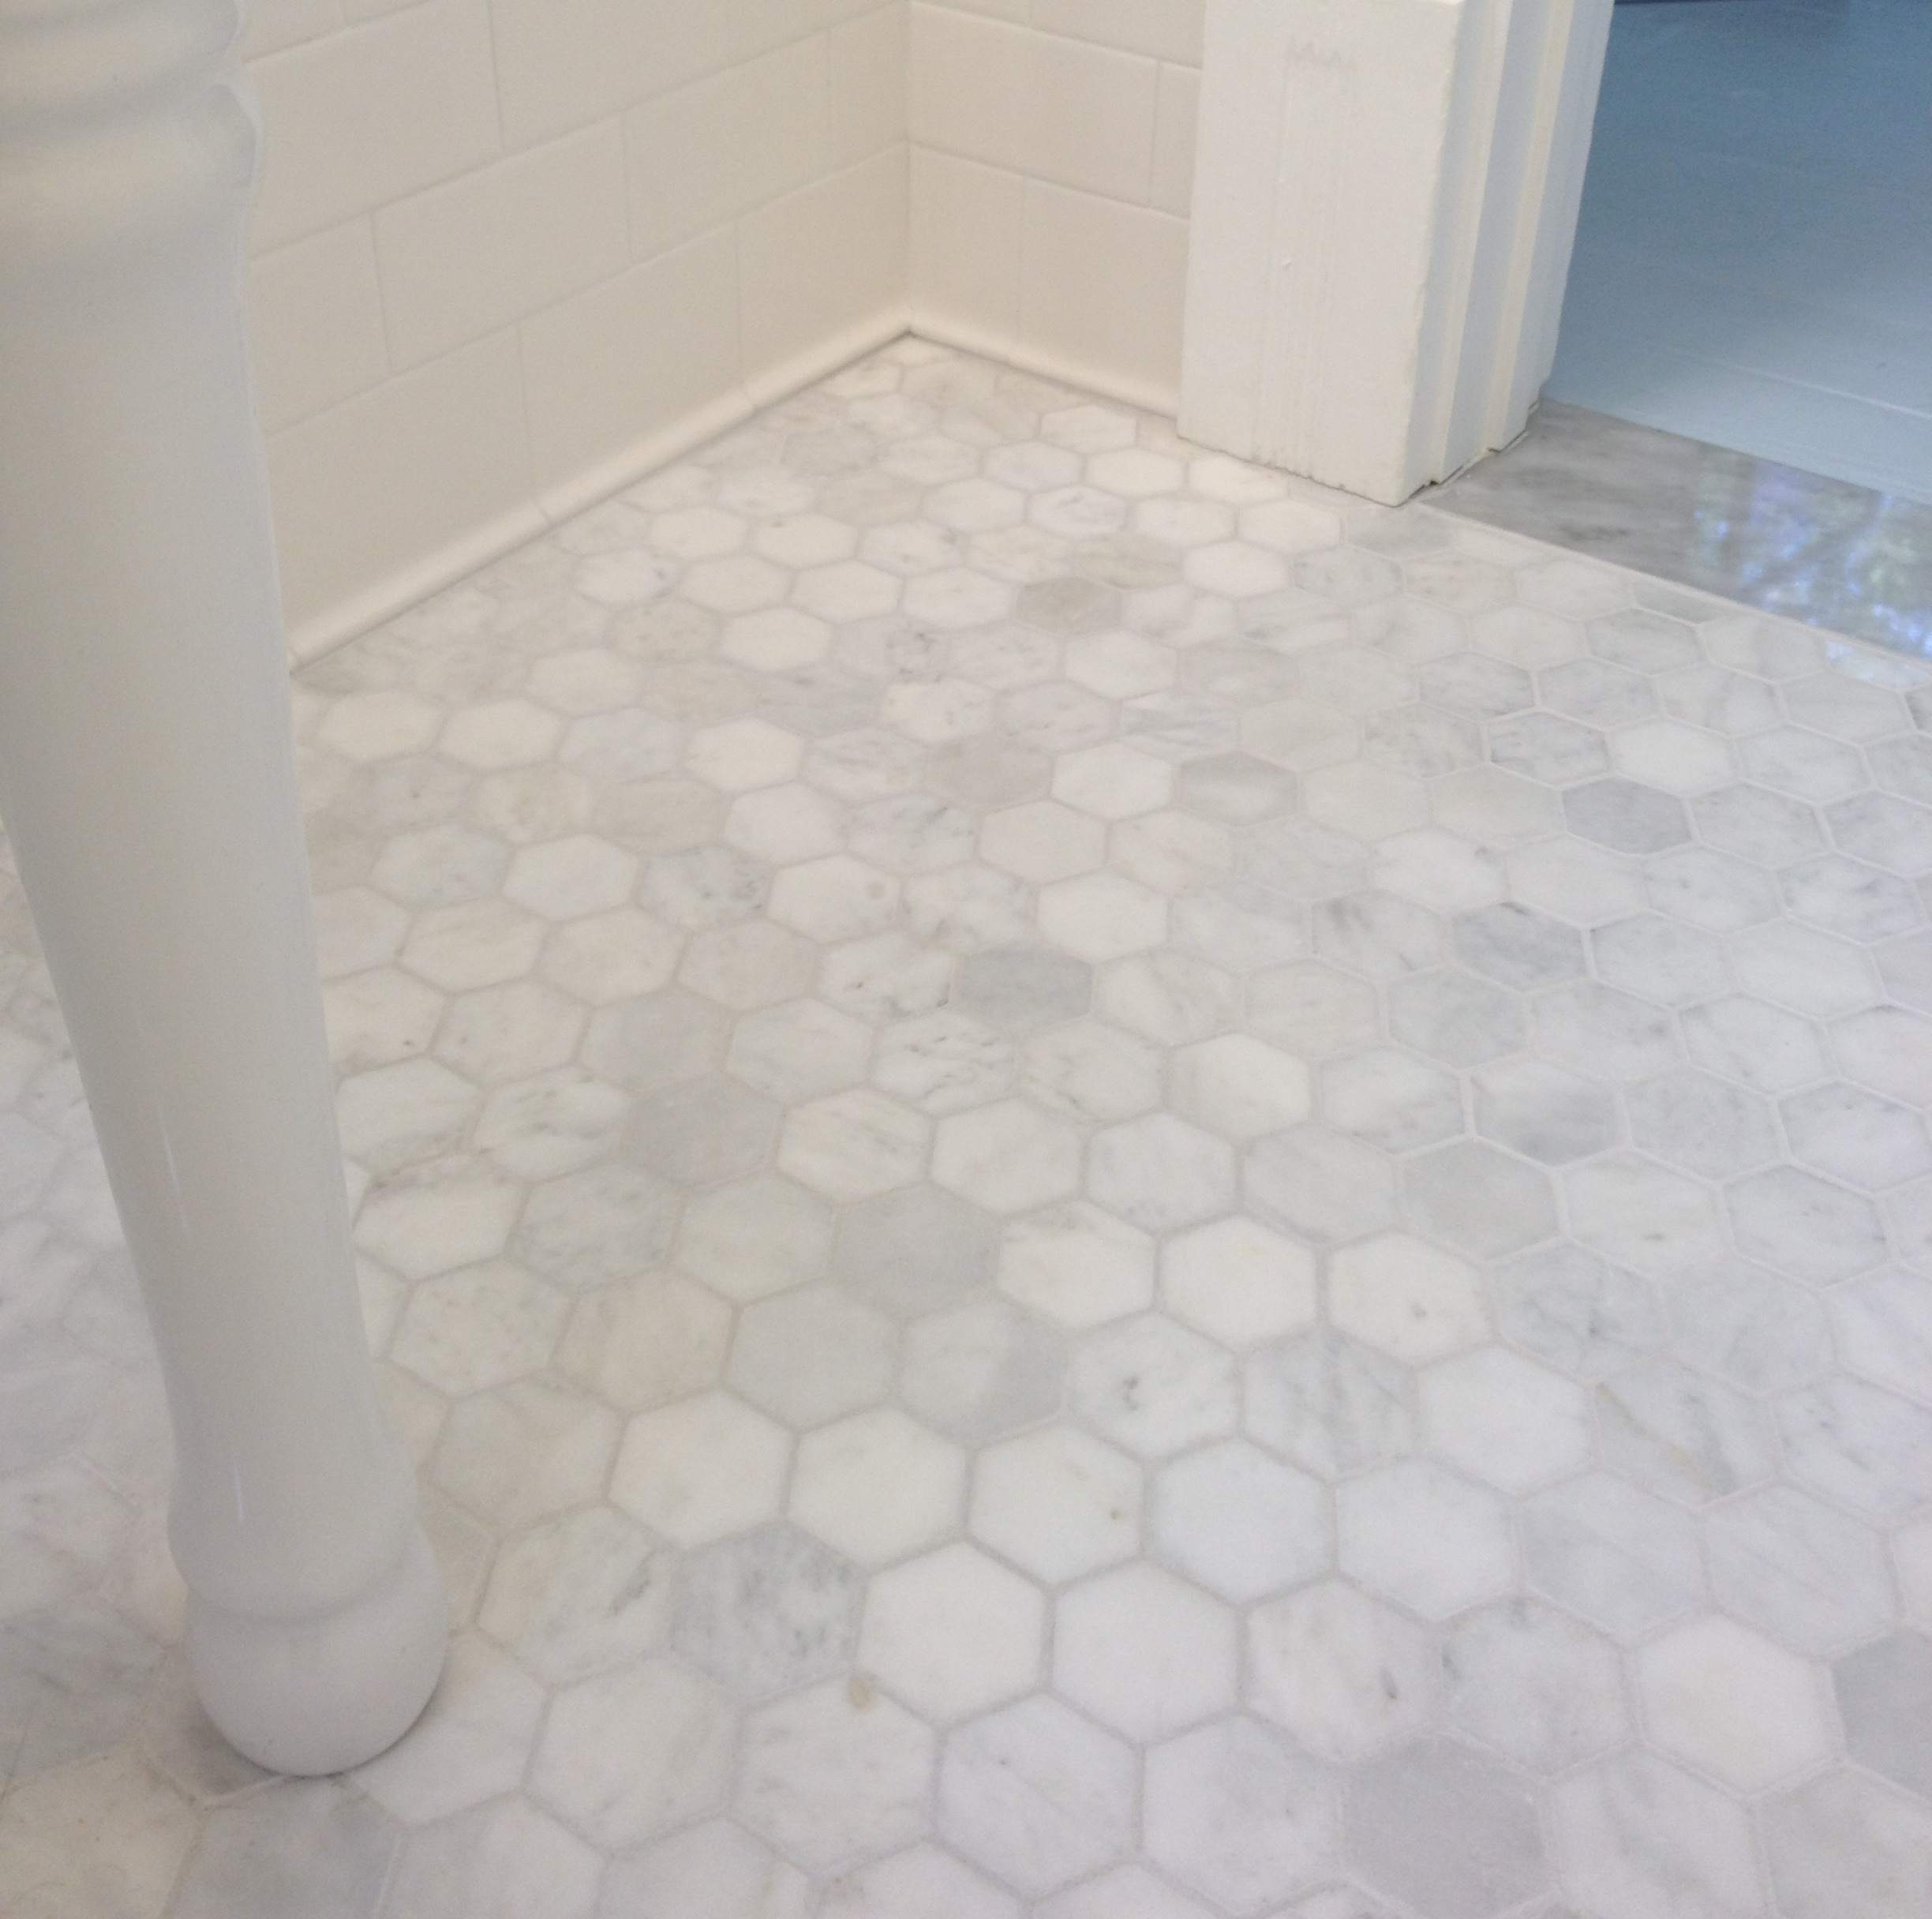 11 - White Marble Tile Bathroom